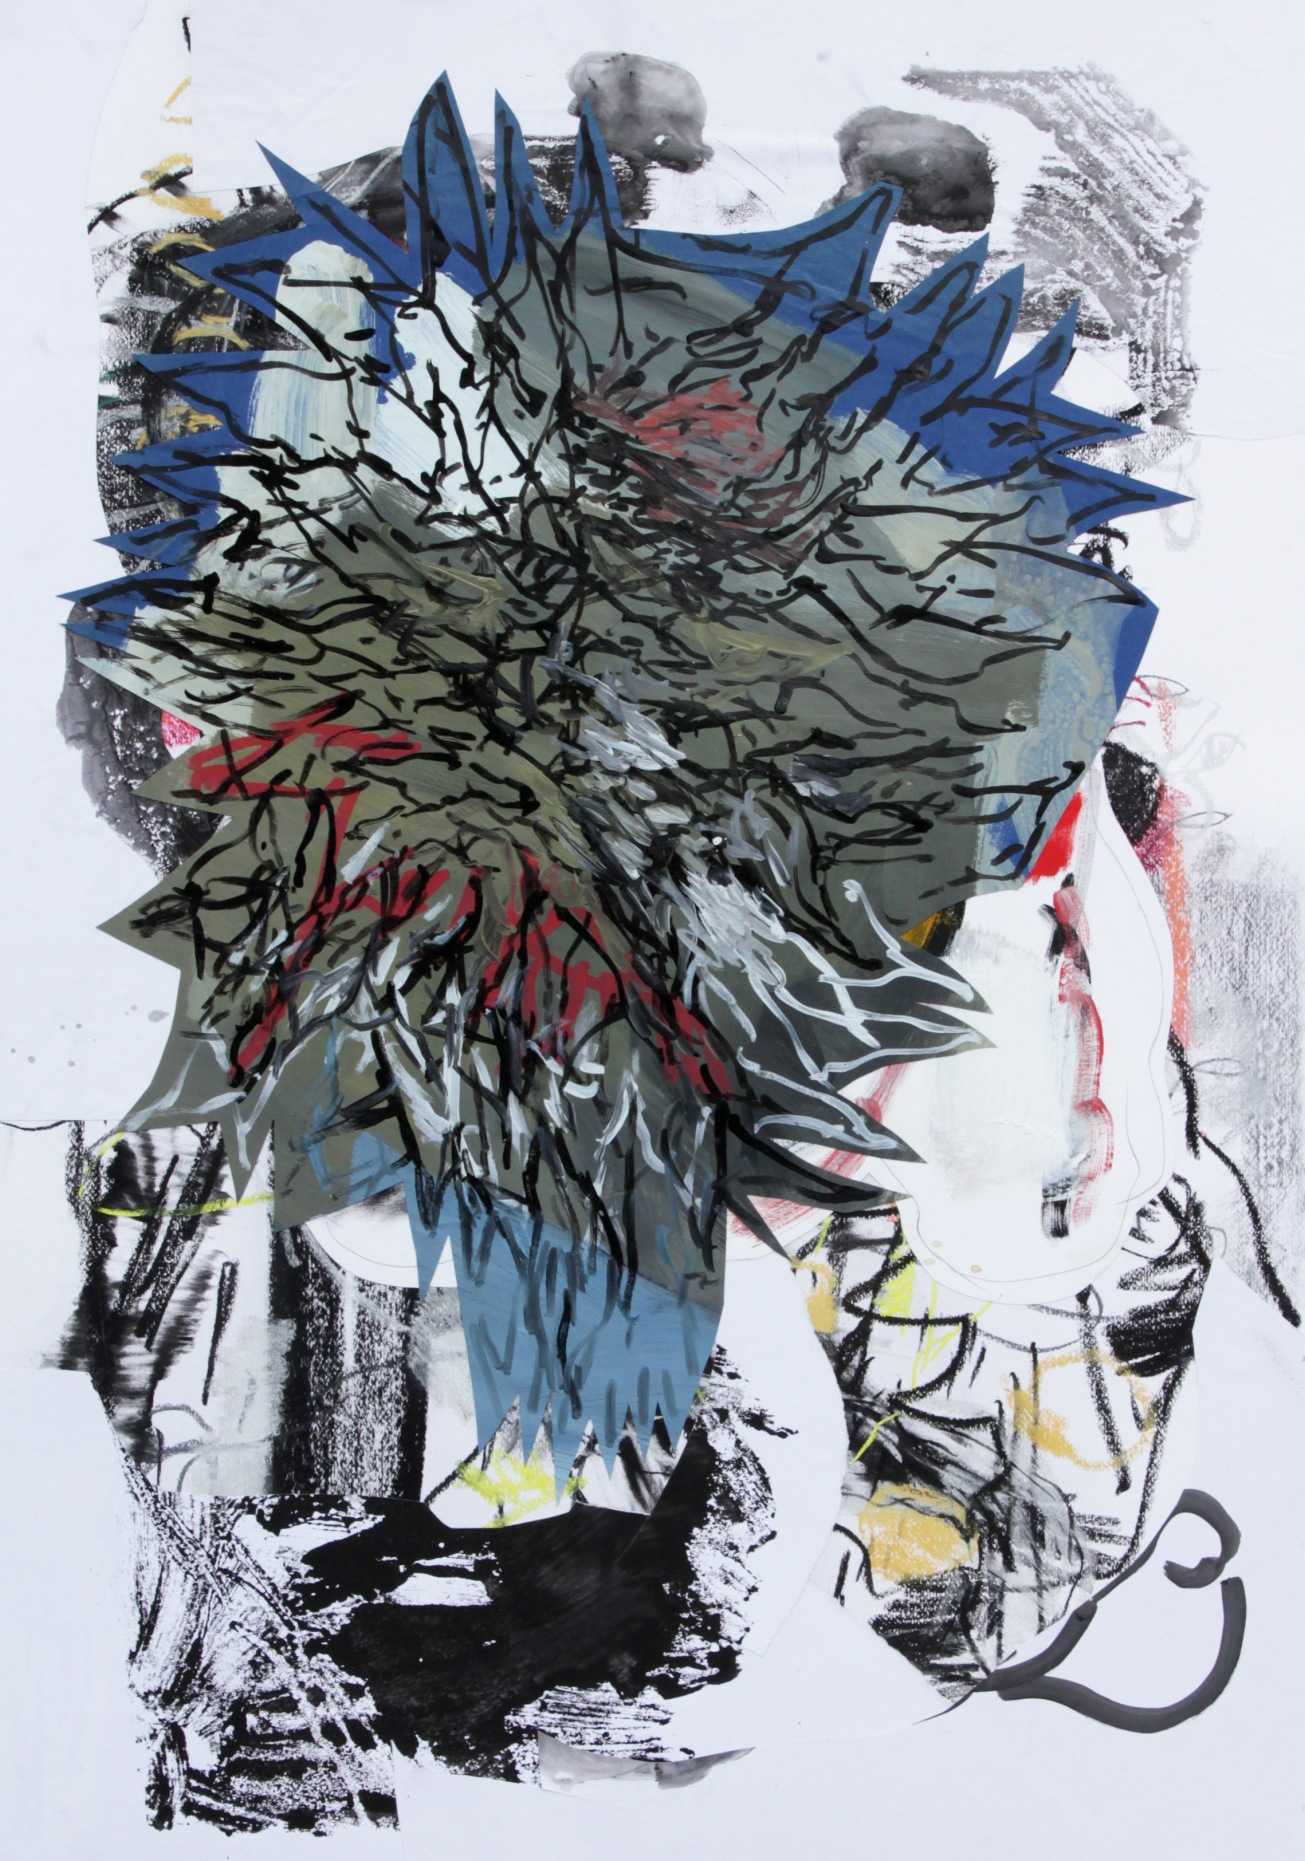 Emma Smith, The common dream, Mixed media on paper 594 x 841 mm 2010